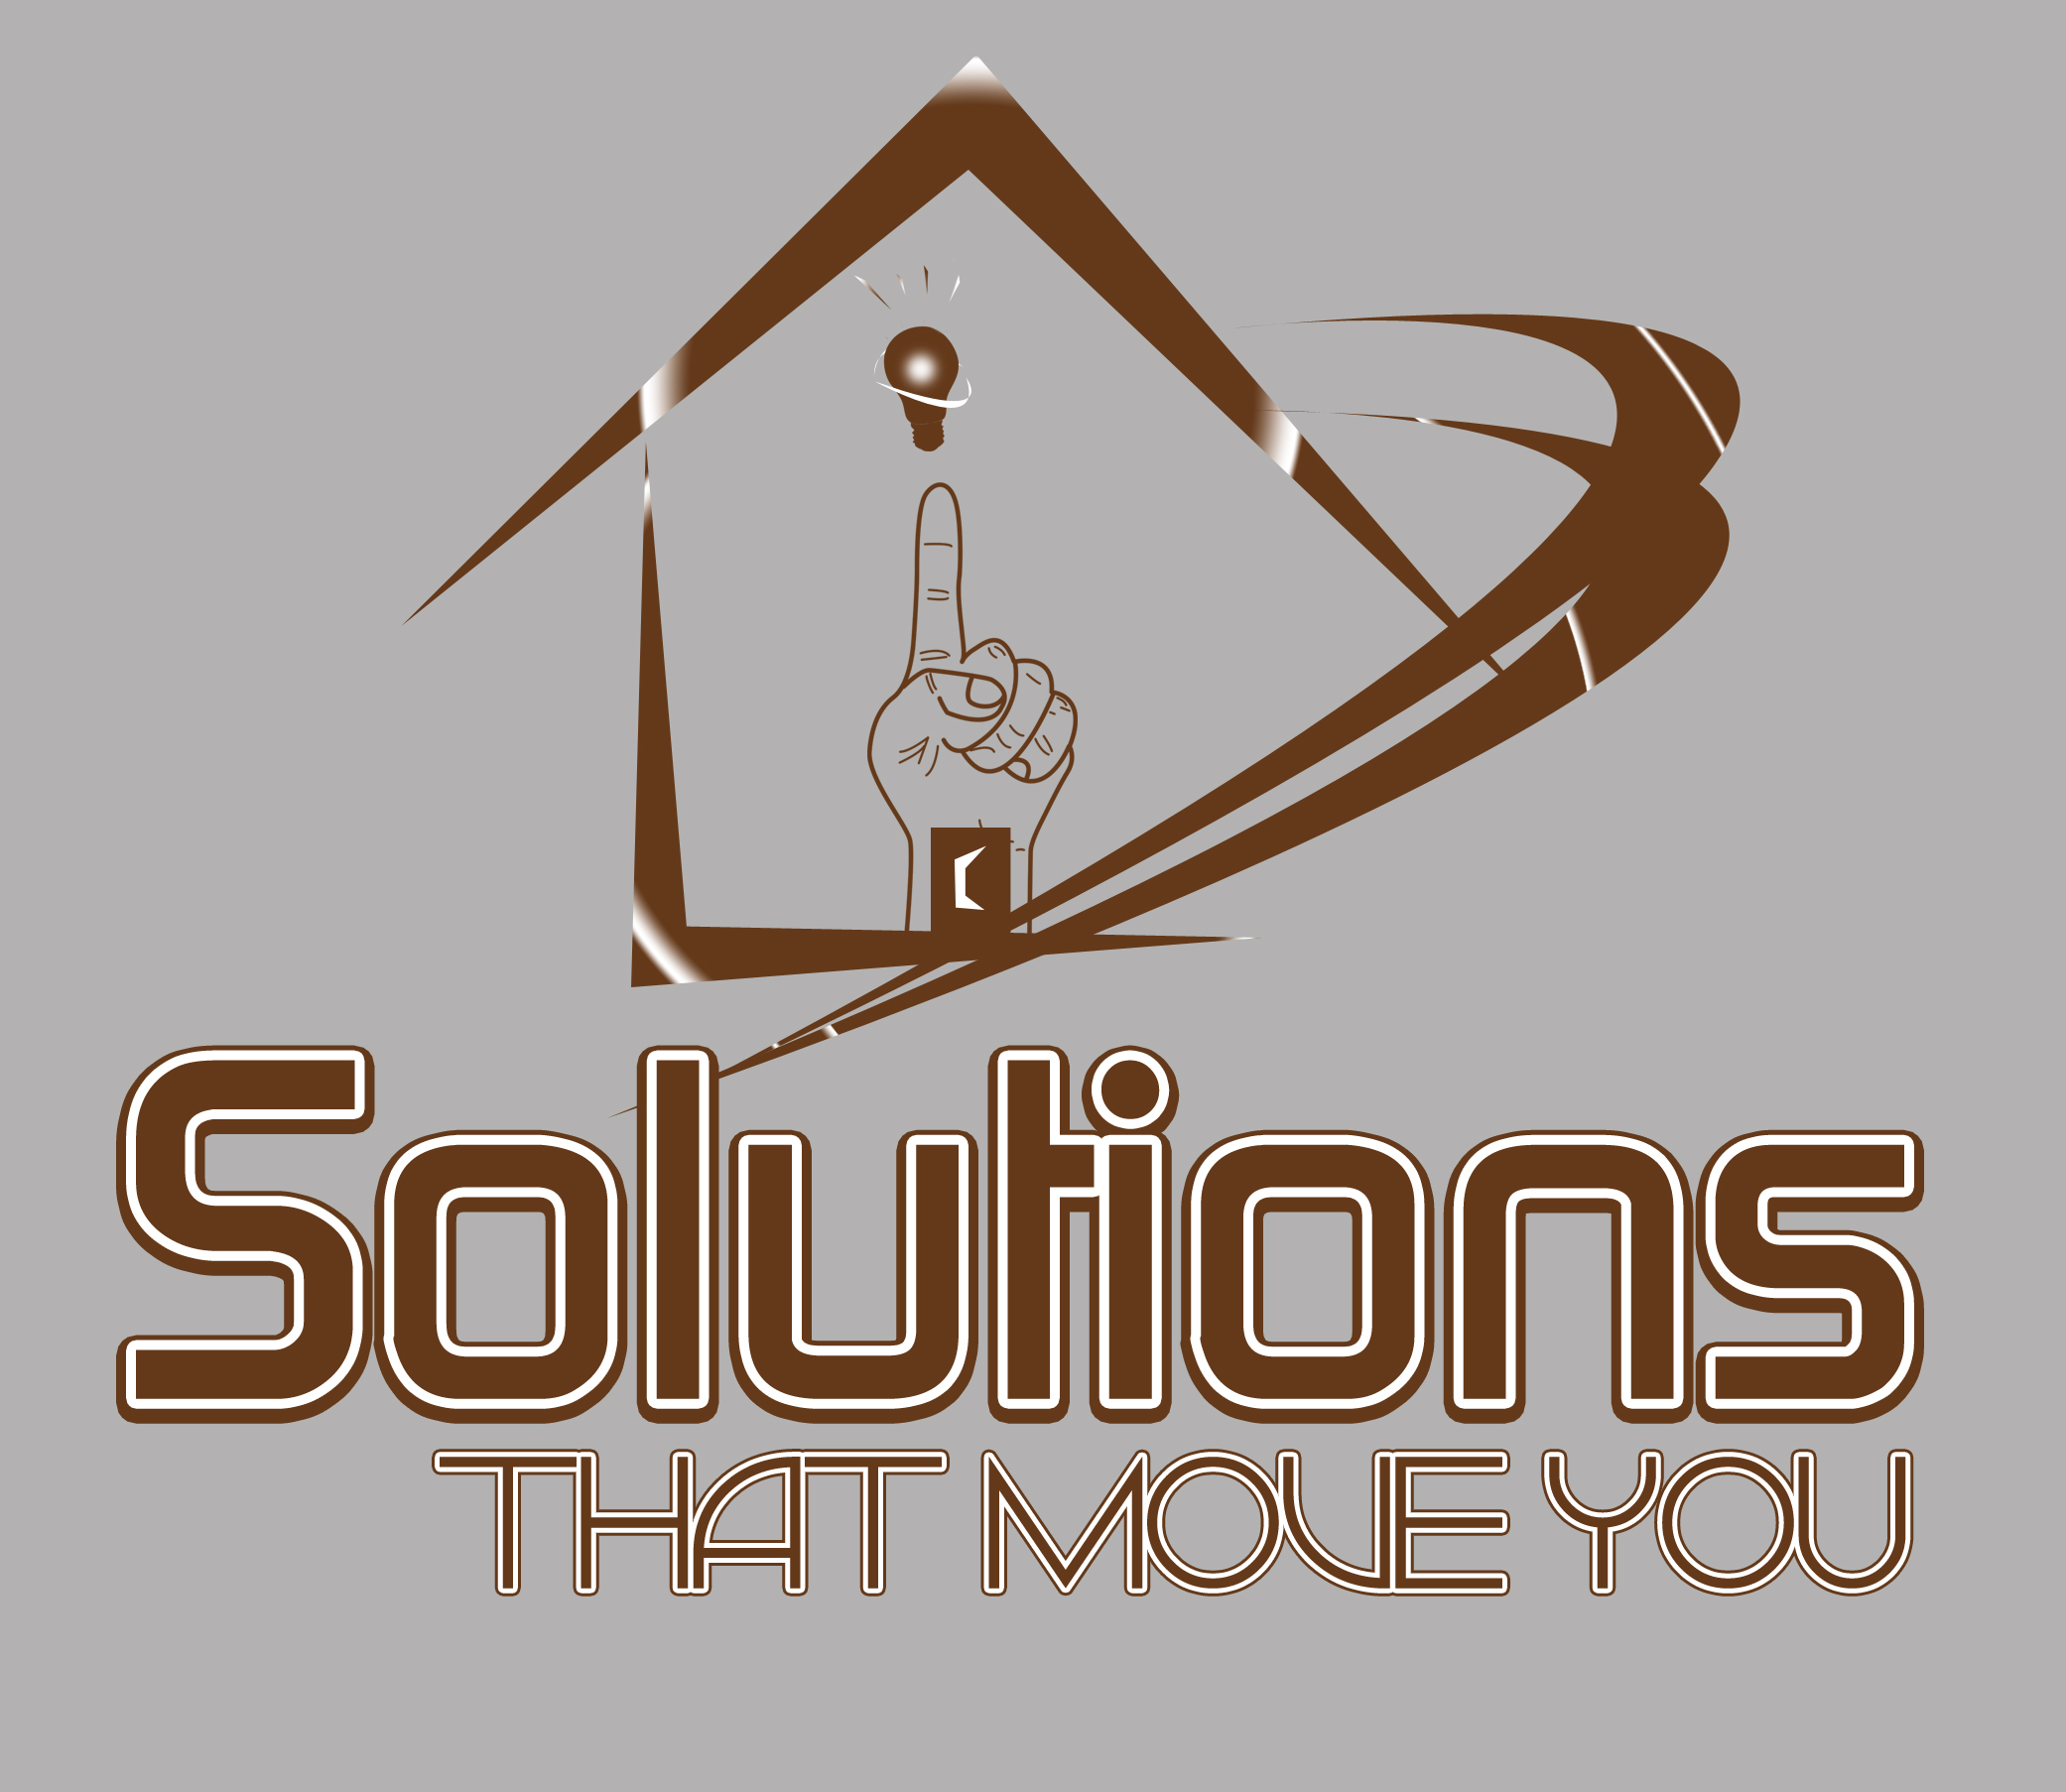 Logo Design by Jo Cres Jao - Entry No. 104 in the Logo Design Contest Imaginative Logo Design for Solutions That Move You.